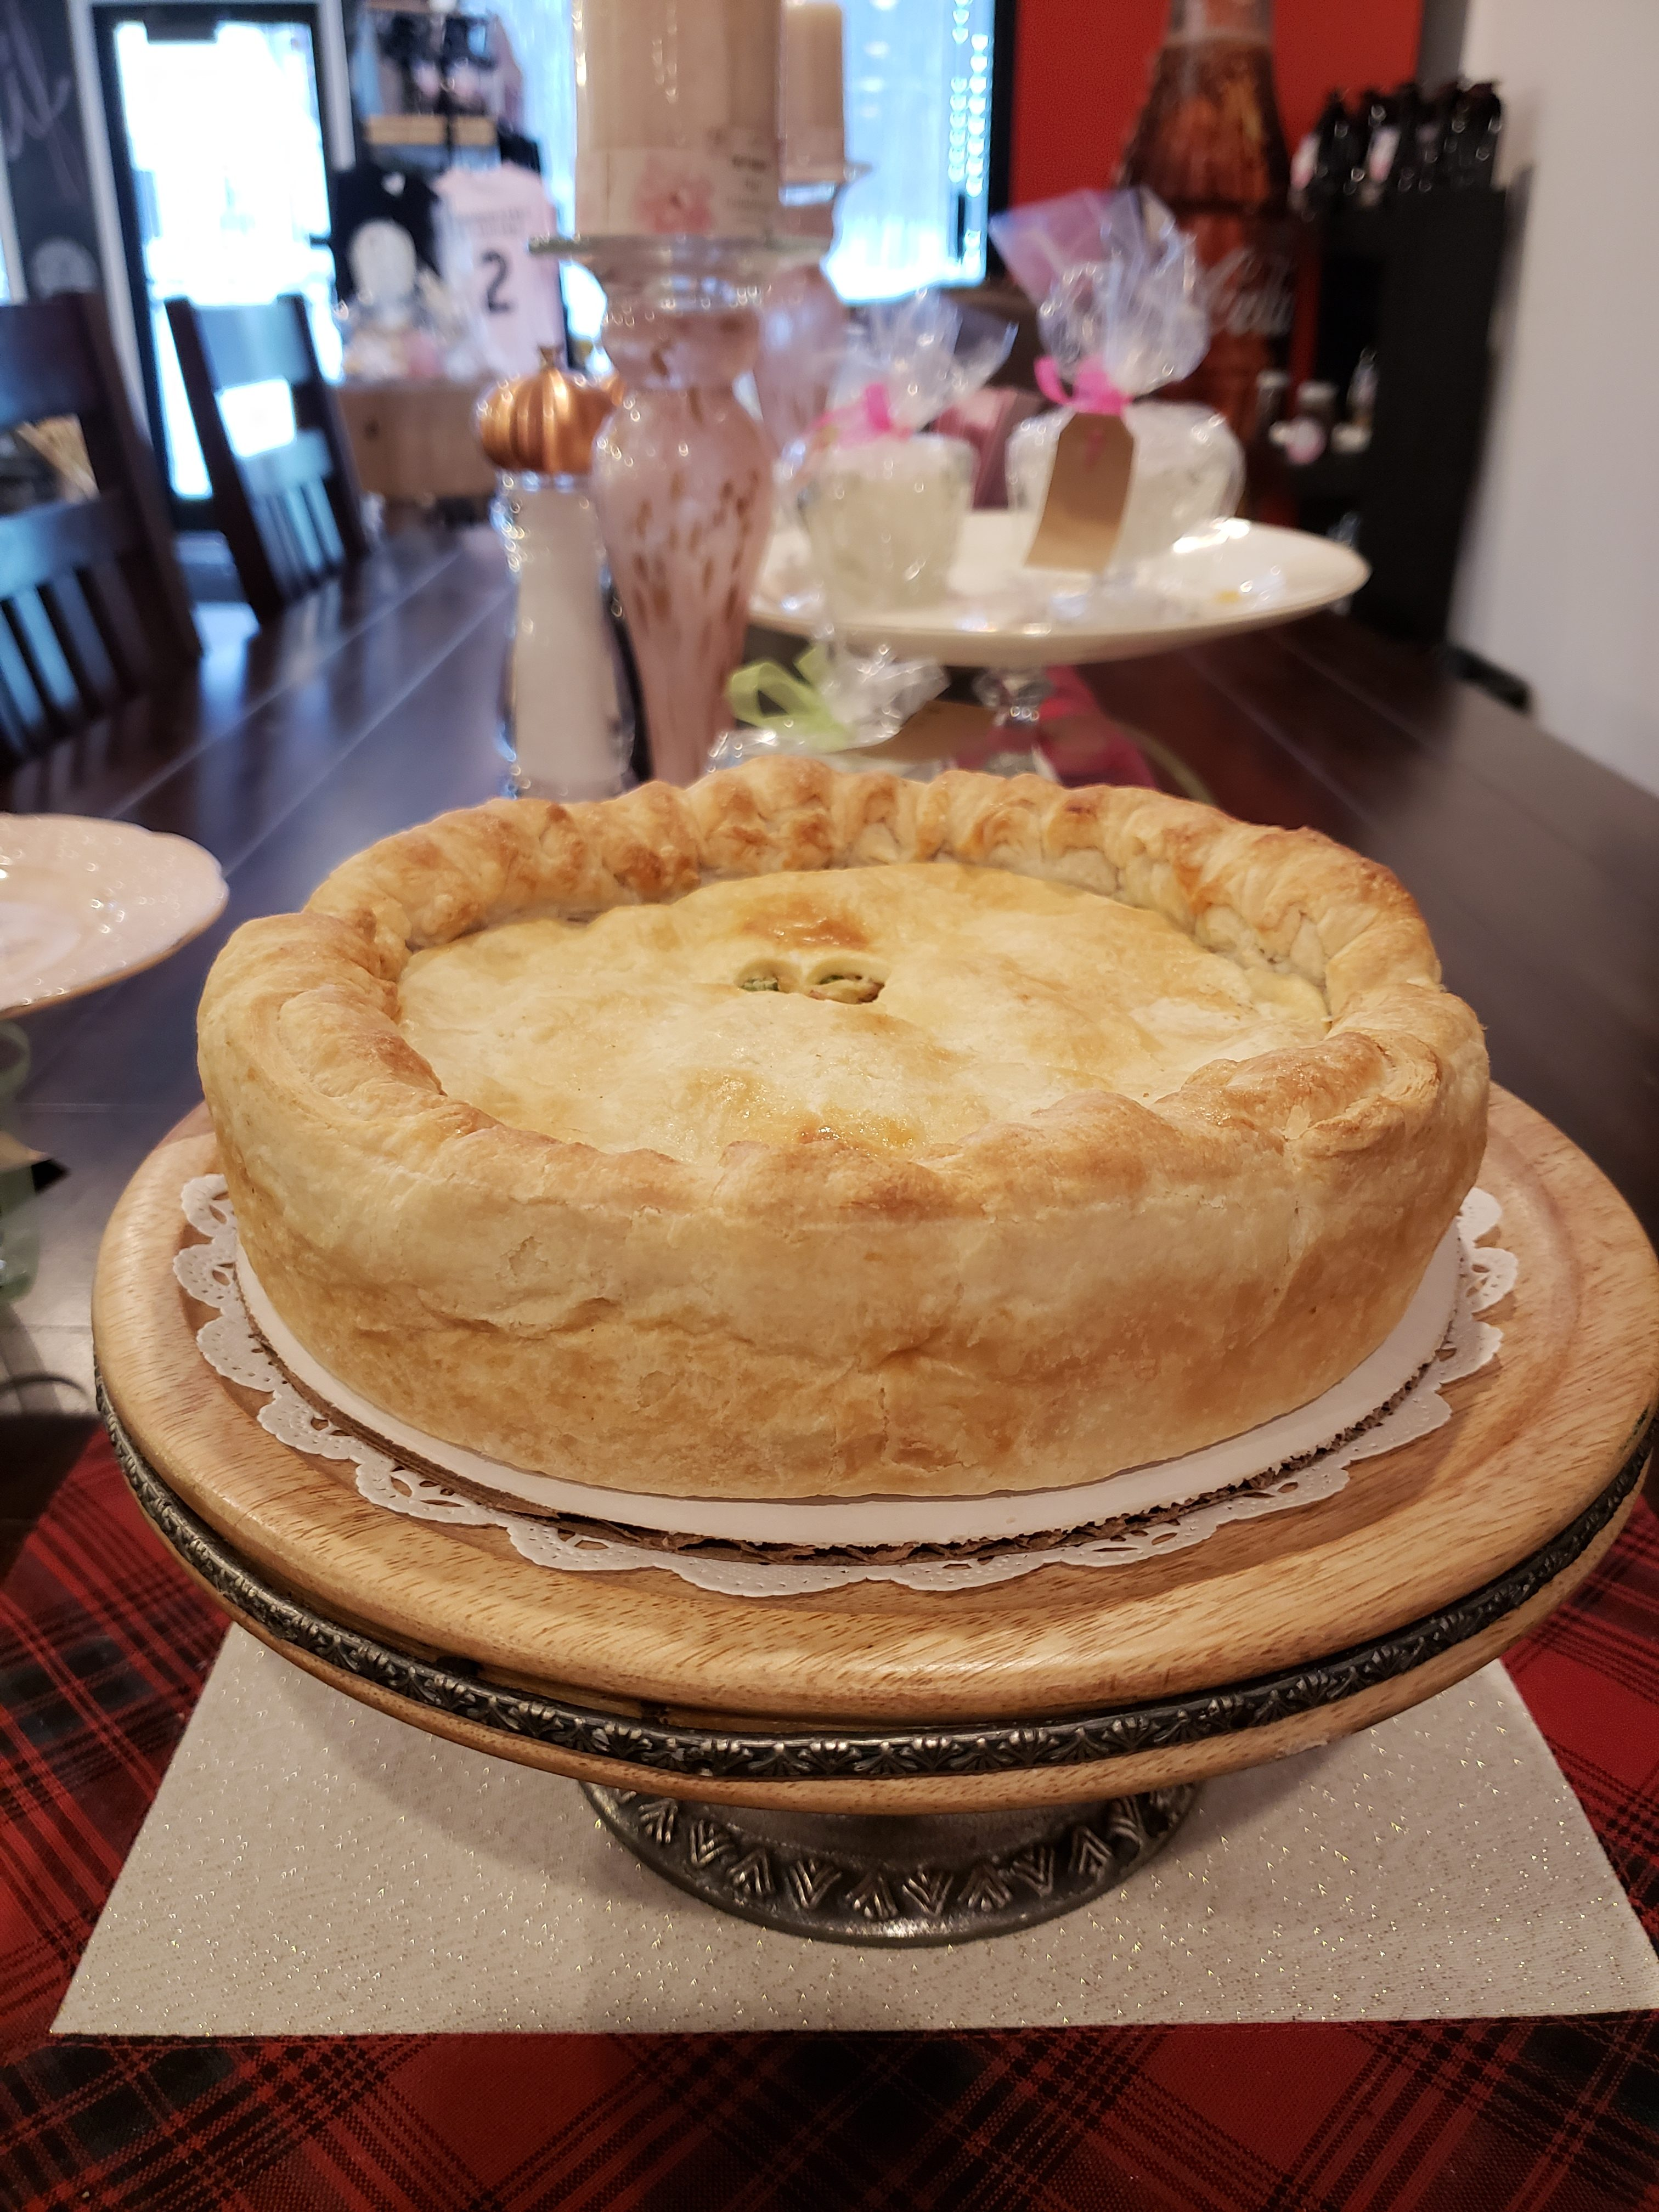 Shannon's Eyes on the Pies